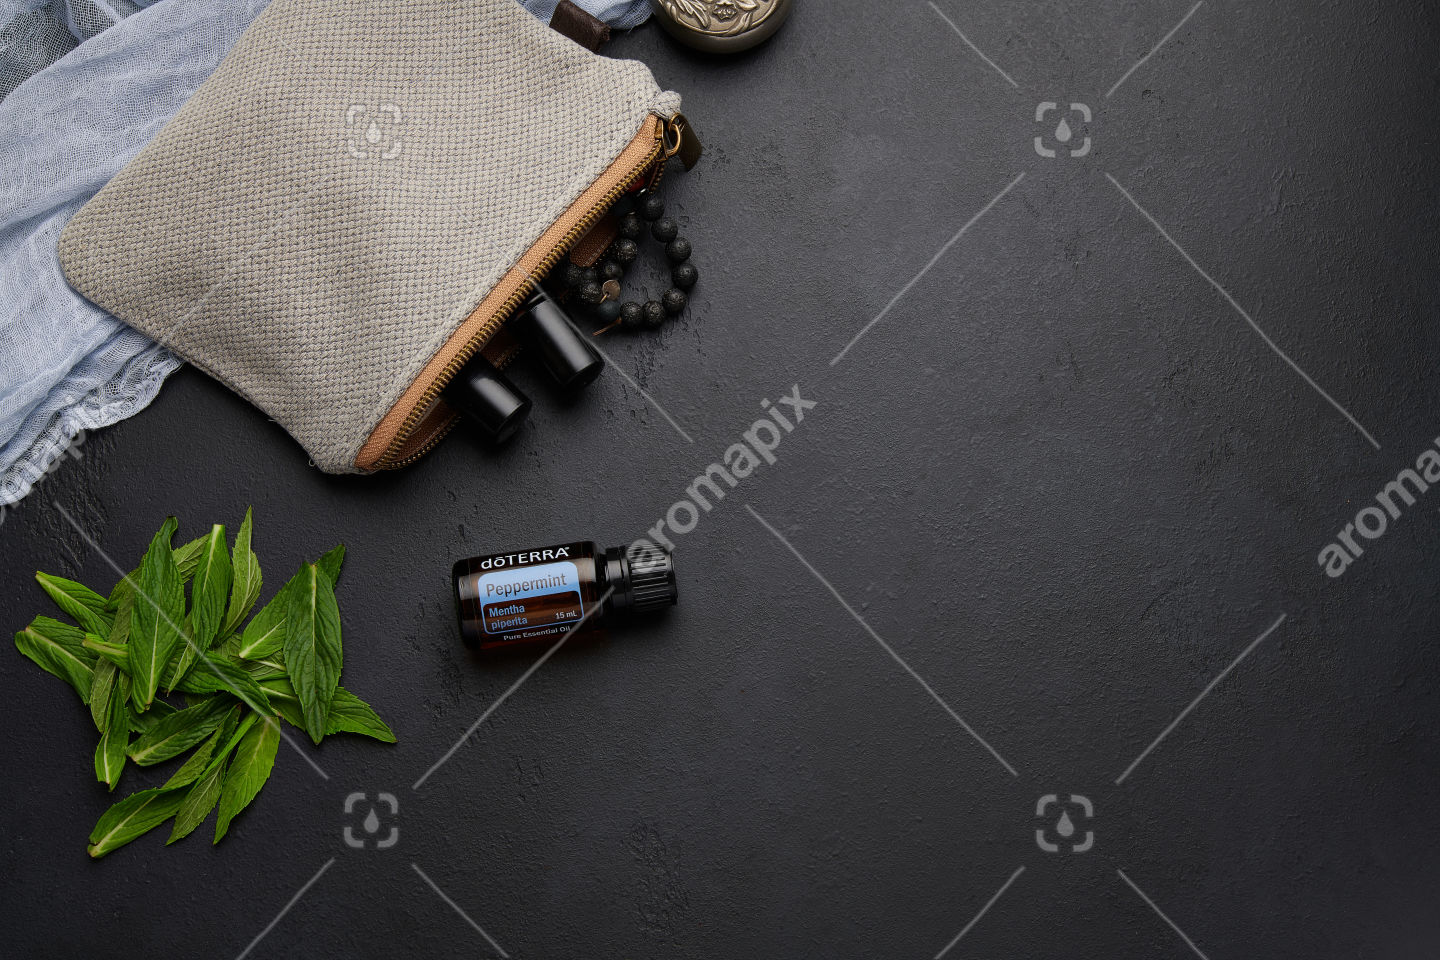 doTERRA Peppermint with mint leaves on black